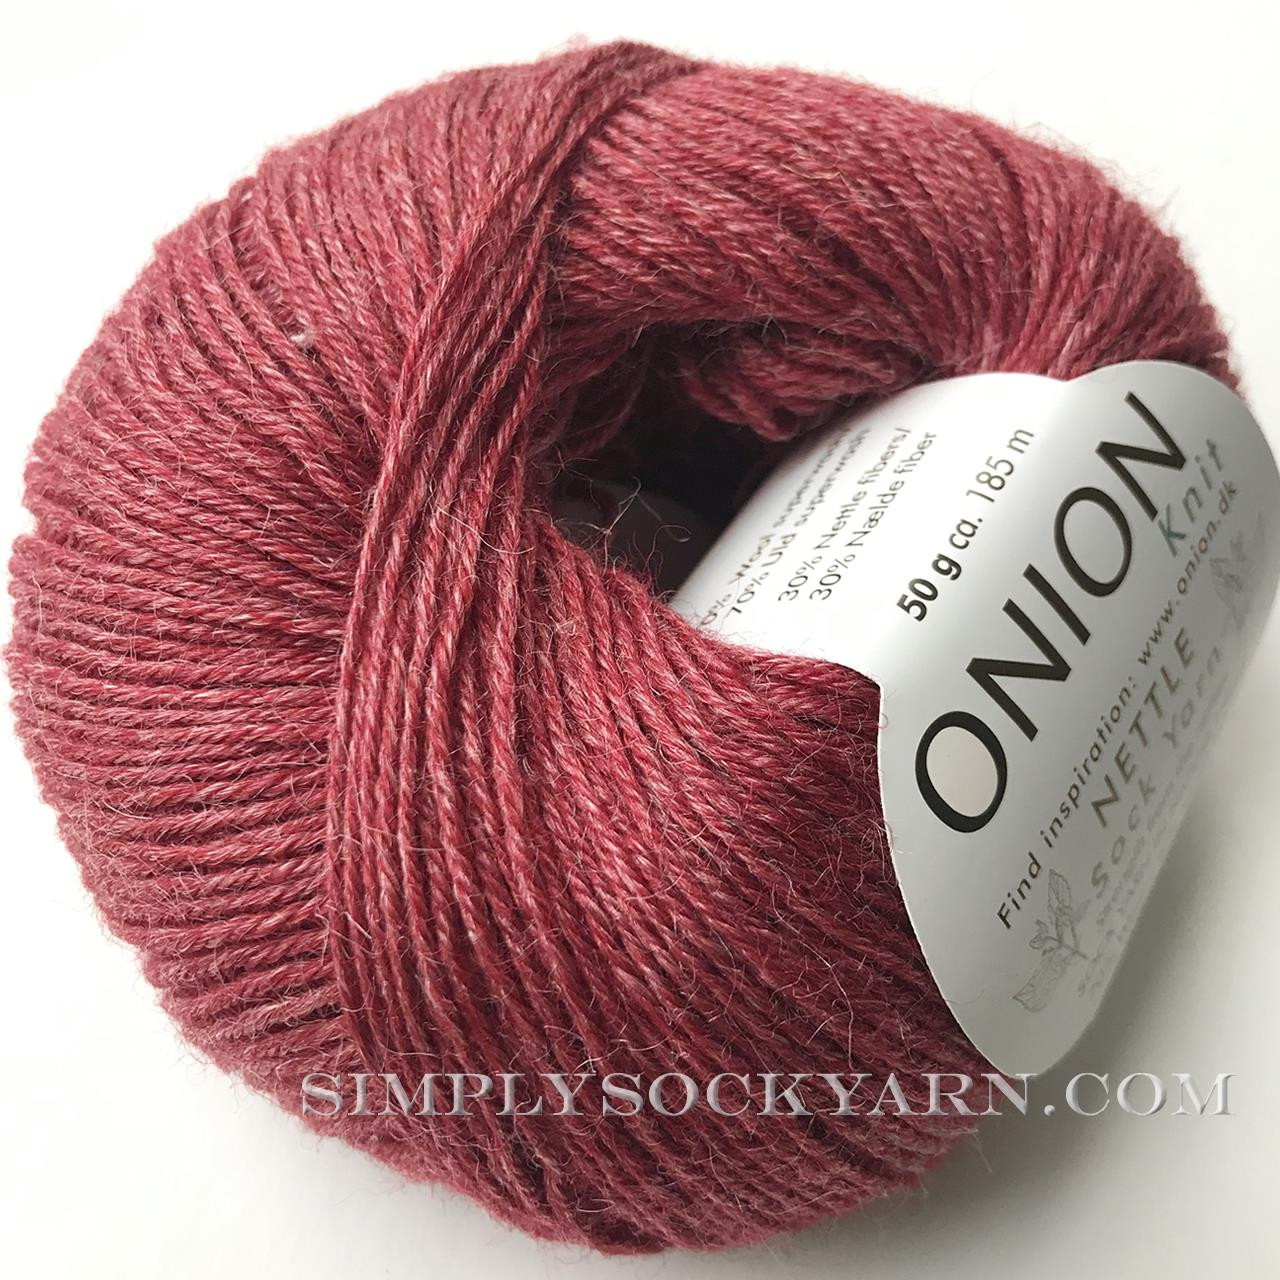 OY Nettle Sock 1008 Dark Red -